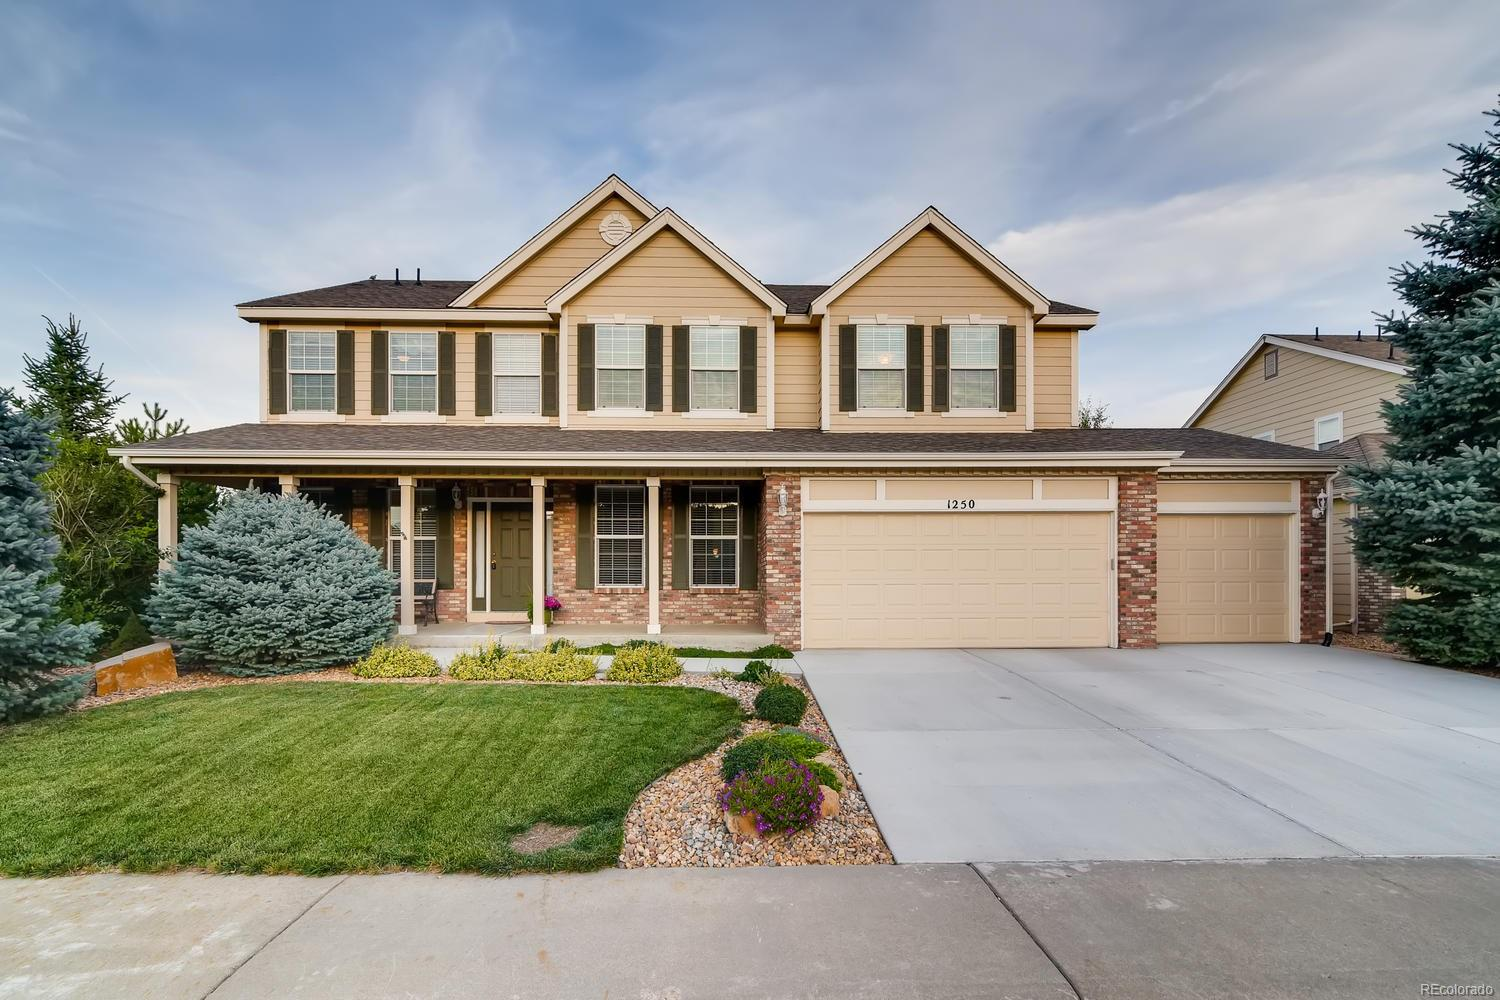 1250 Sunflower Drive, Fort Collins, CO 80521 - Fort Collins, CO real estate listing